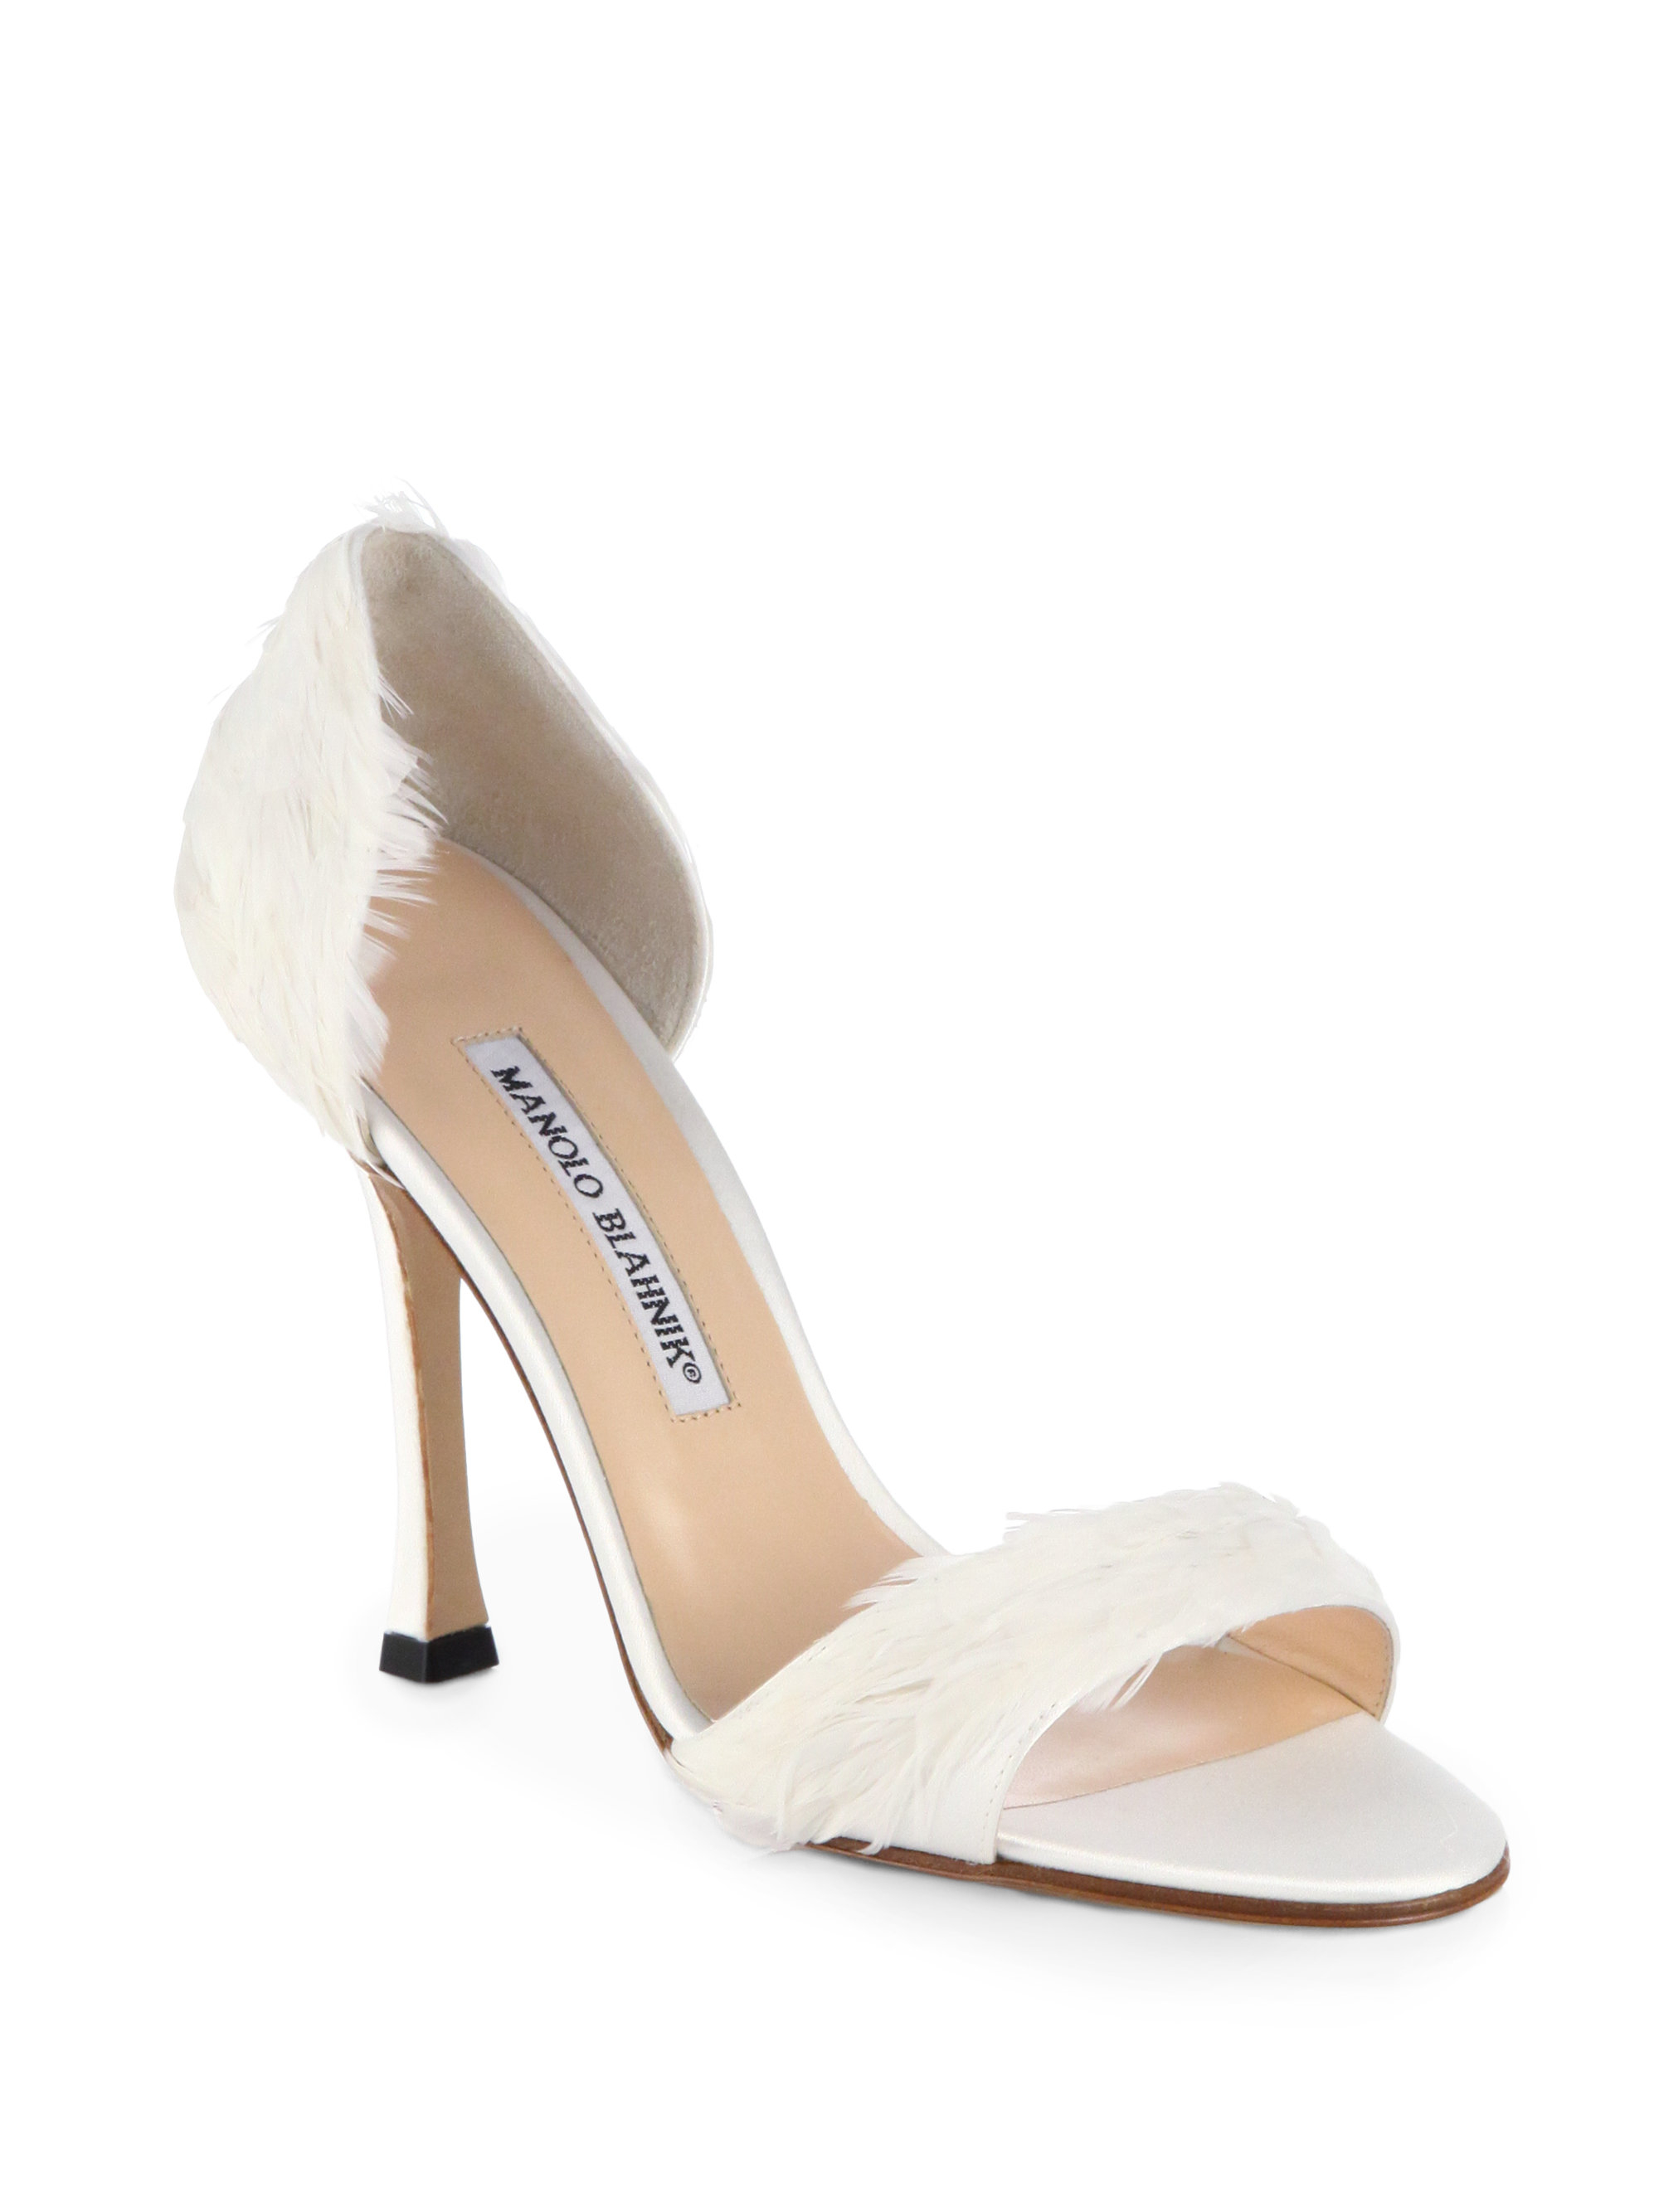 saks wedding shoes photo - 1